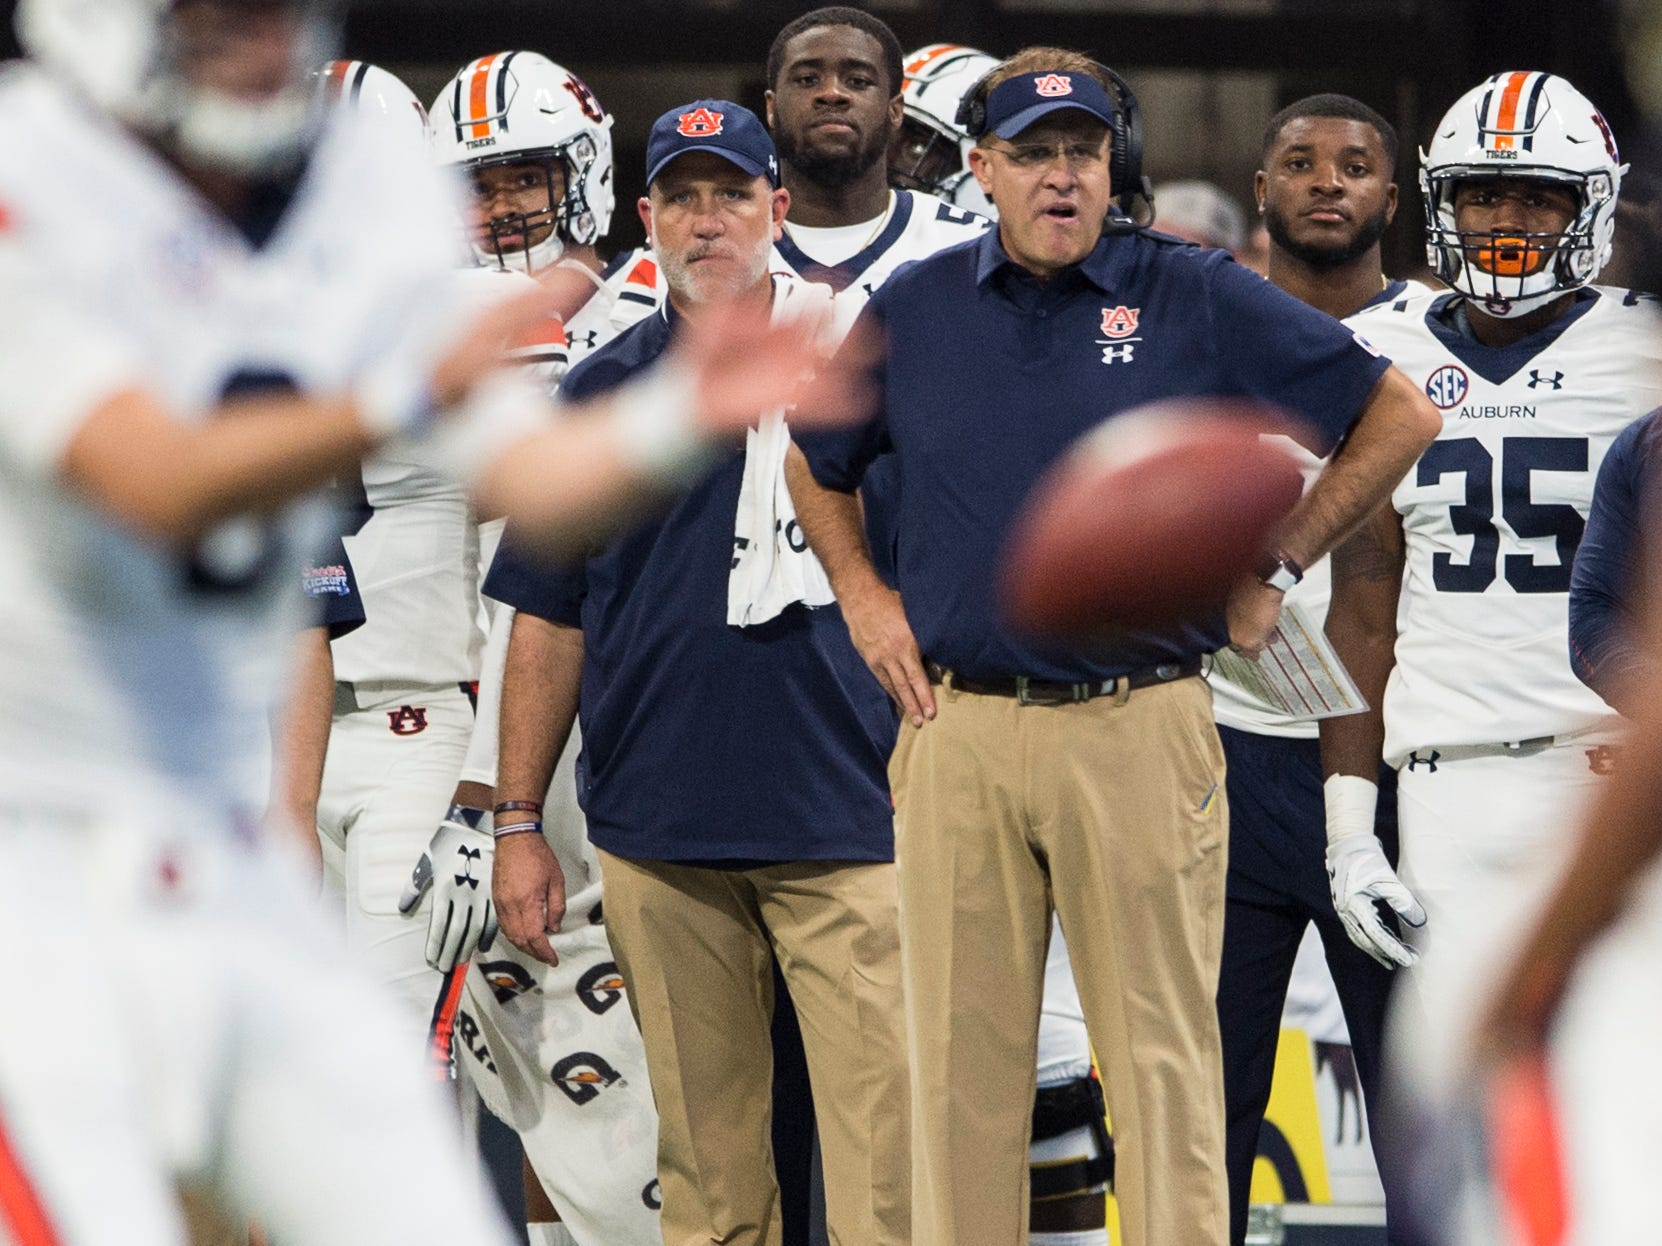 Auburn head coach Gus Malzahn watches as his team snaps the ball at Mercedes-Benz Stadium in Atlanta, Ga., on Saturday, Sept. 1, 2018. Auburn defeated Washington 21-16 in the Chick-fil-a Kickoff Game.